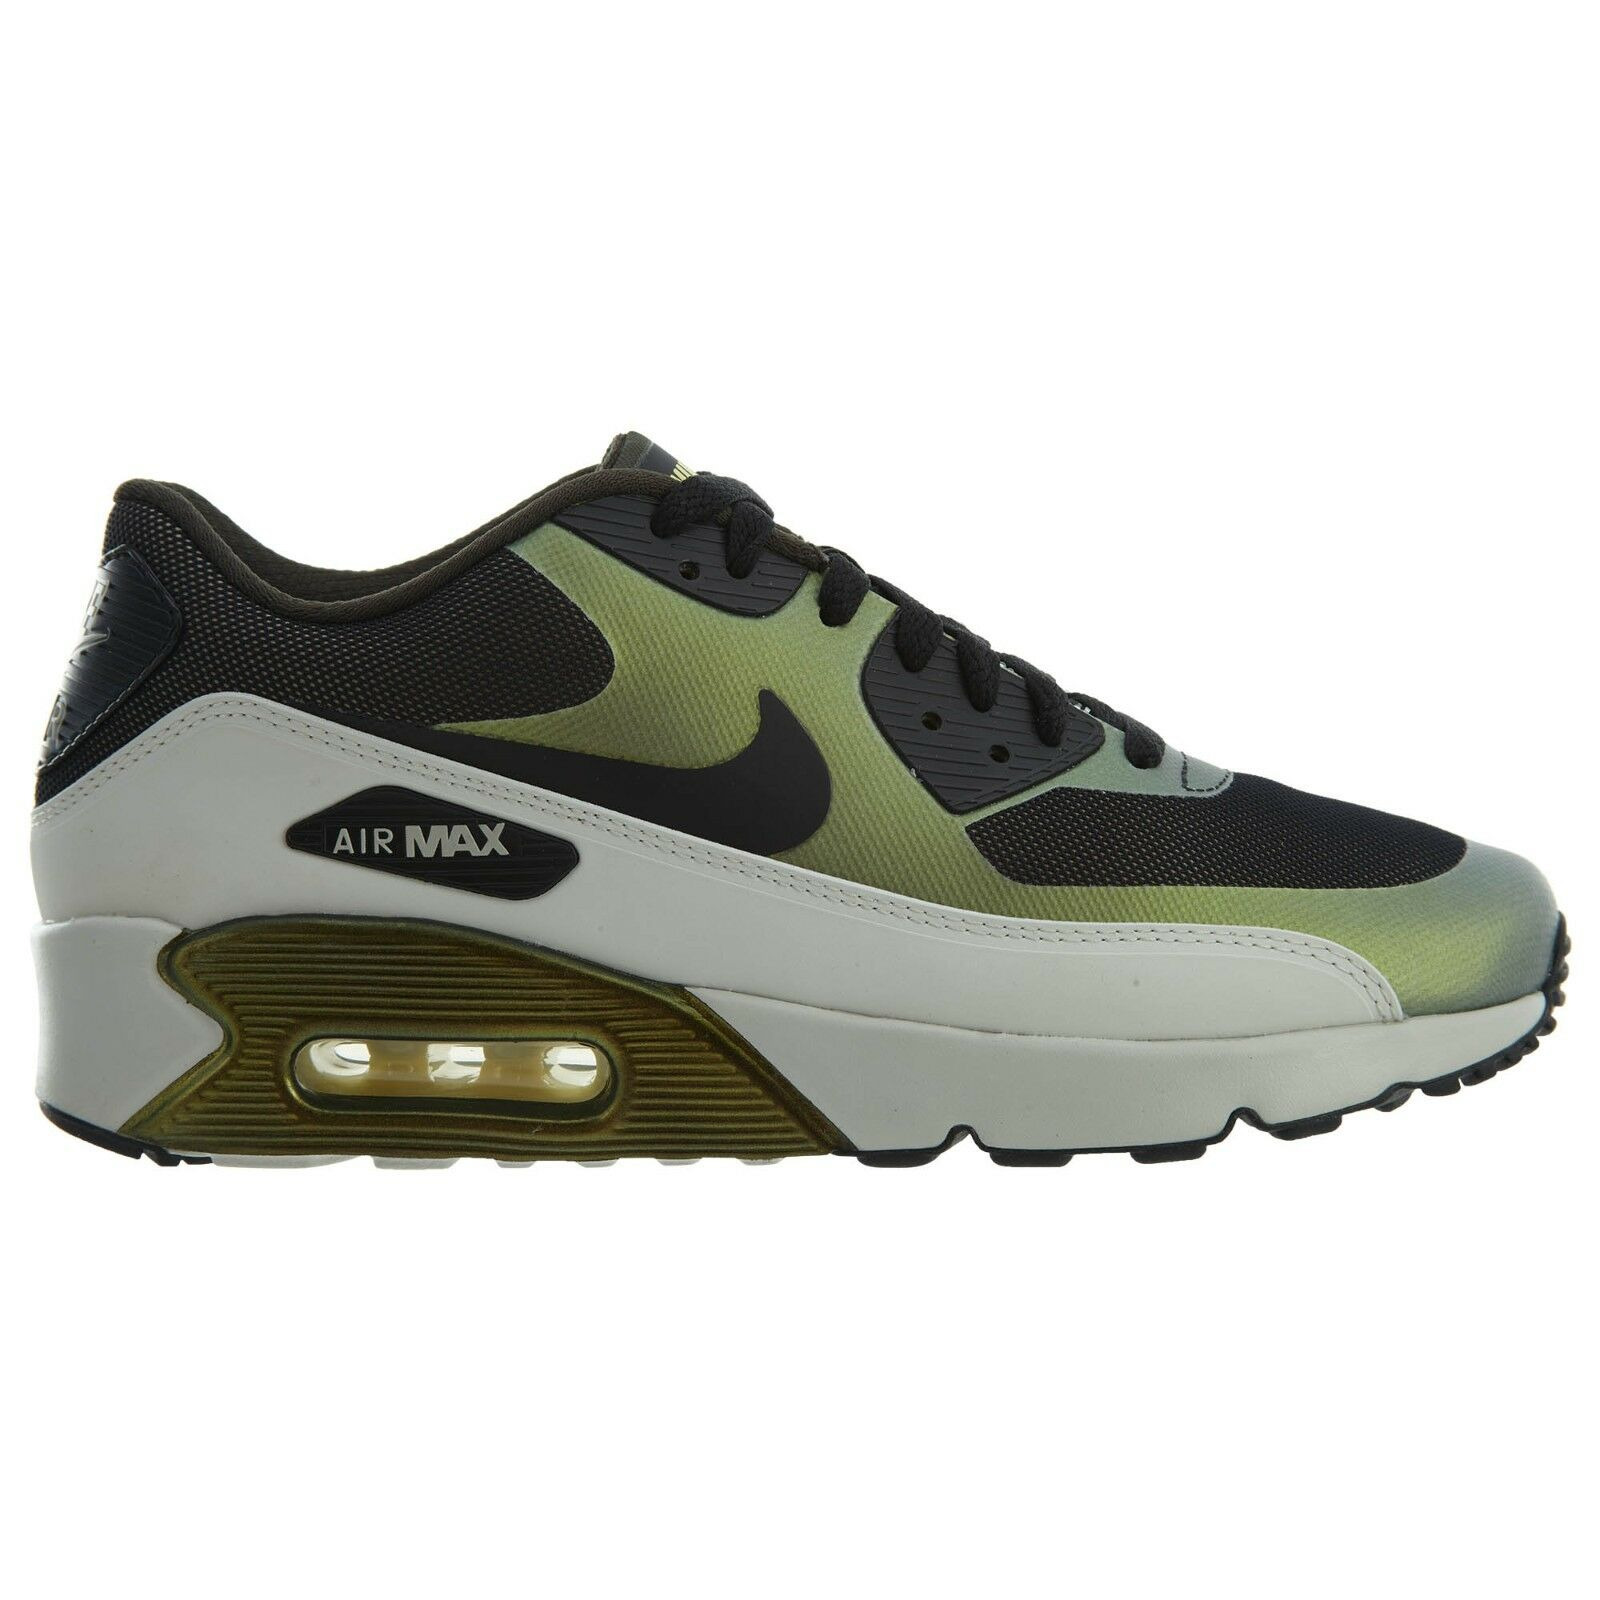 Nike Air Max 90 Ultra 2.0 SE Mens 876005-700 Pale Citron Running Shoes Size 7.5